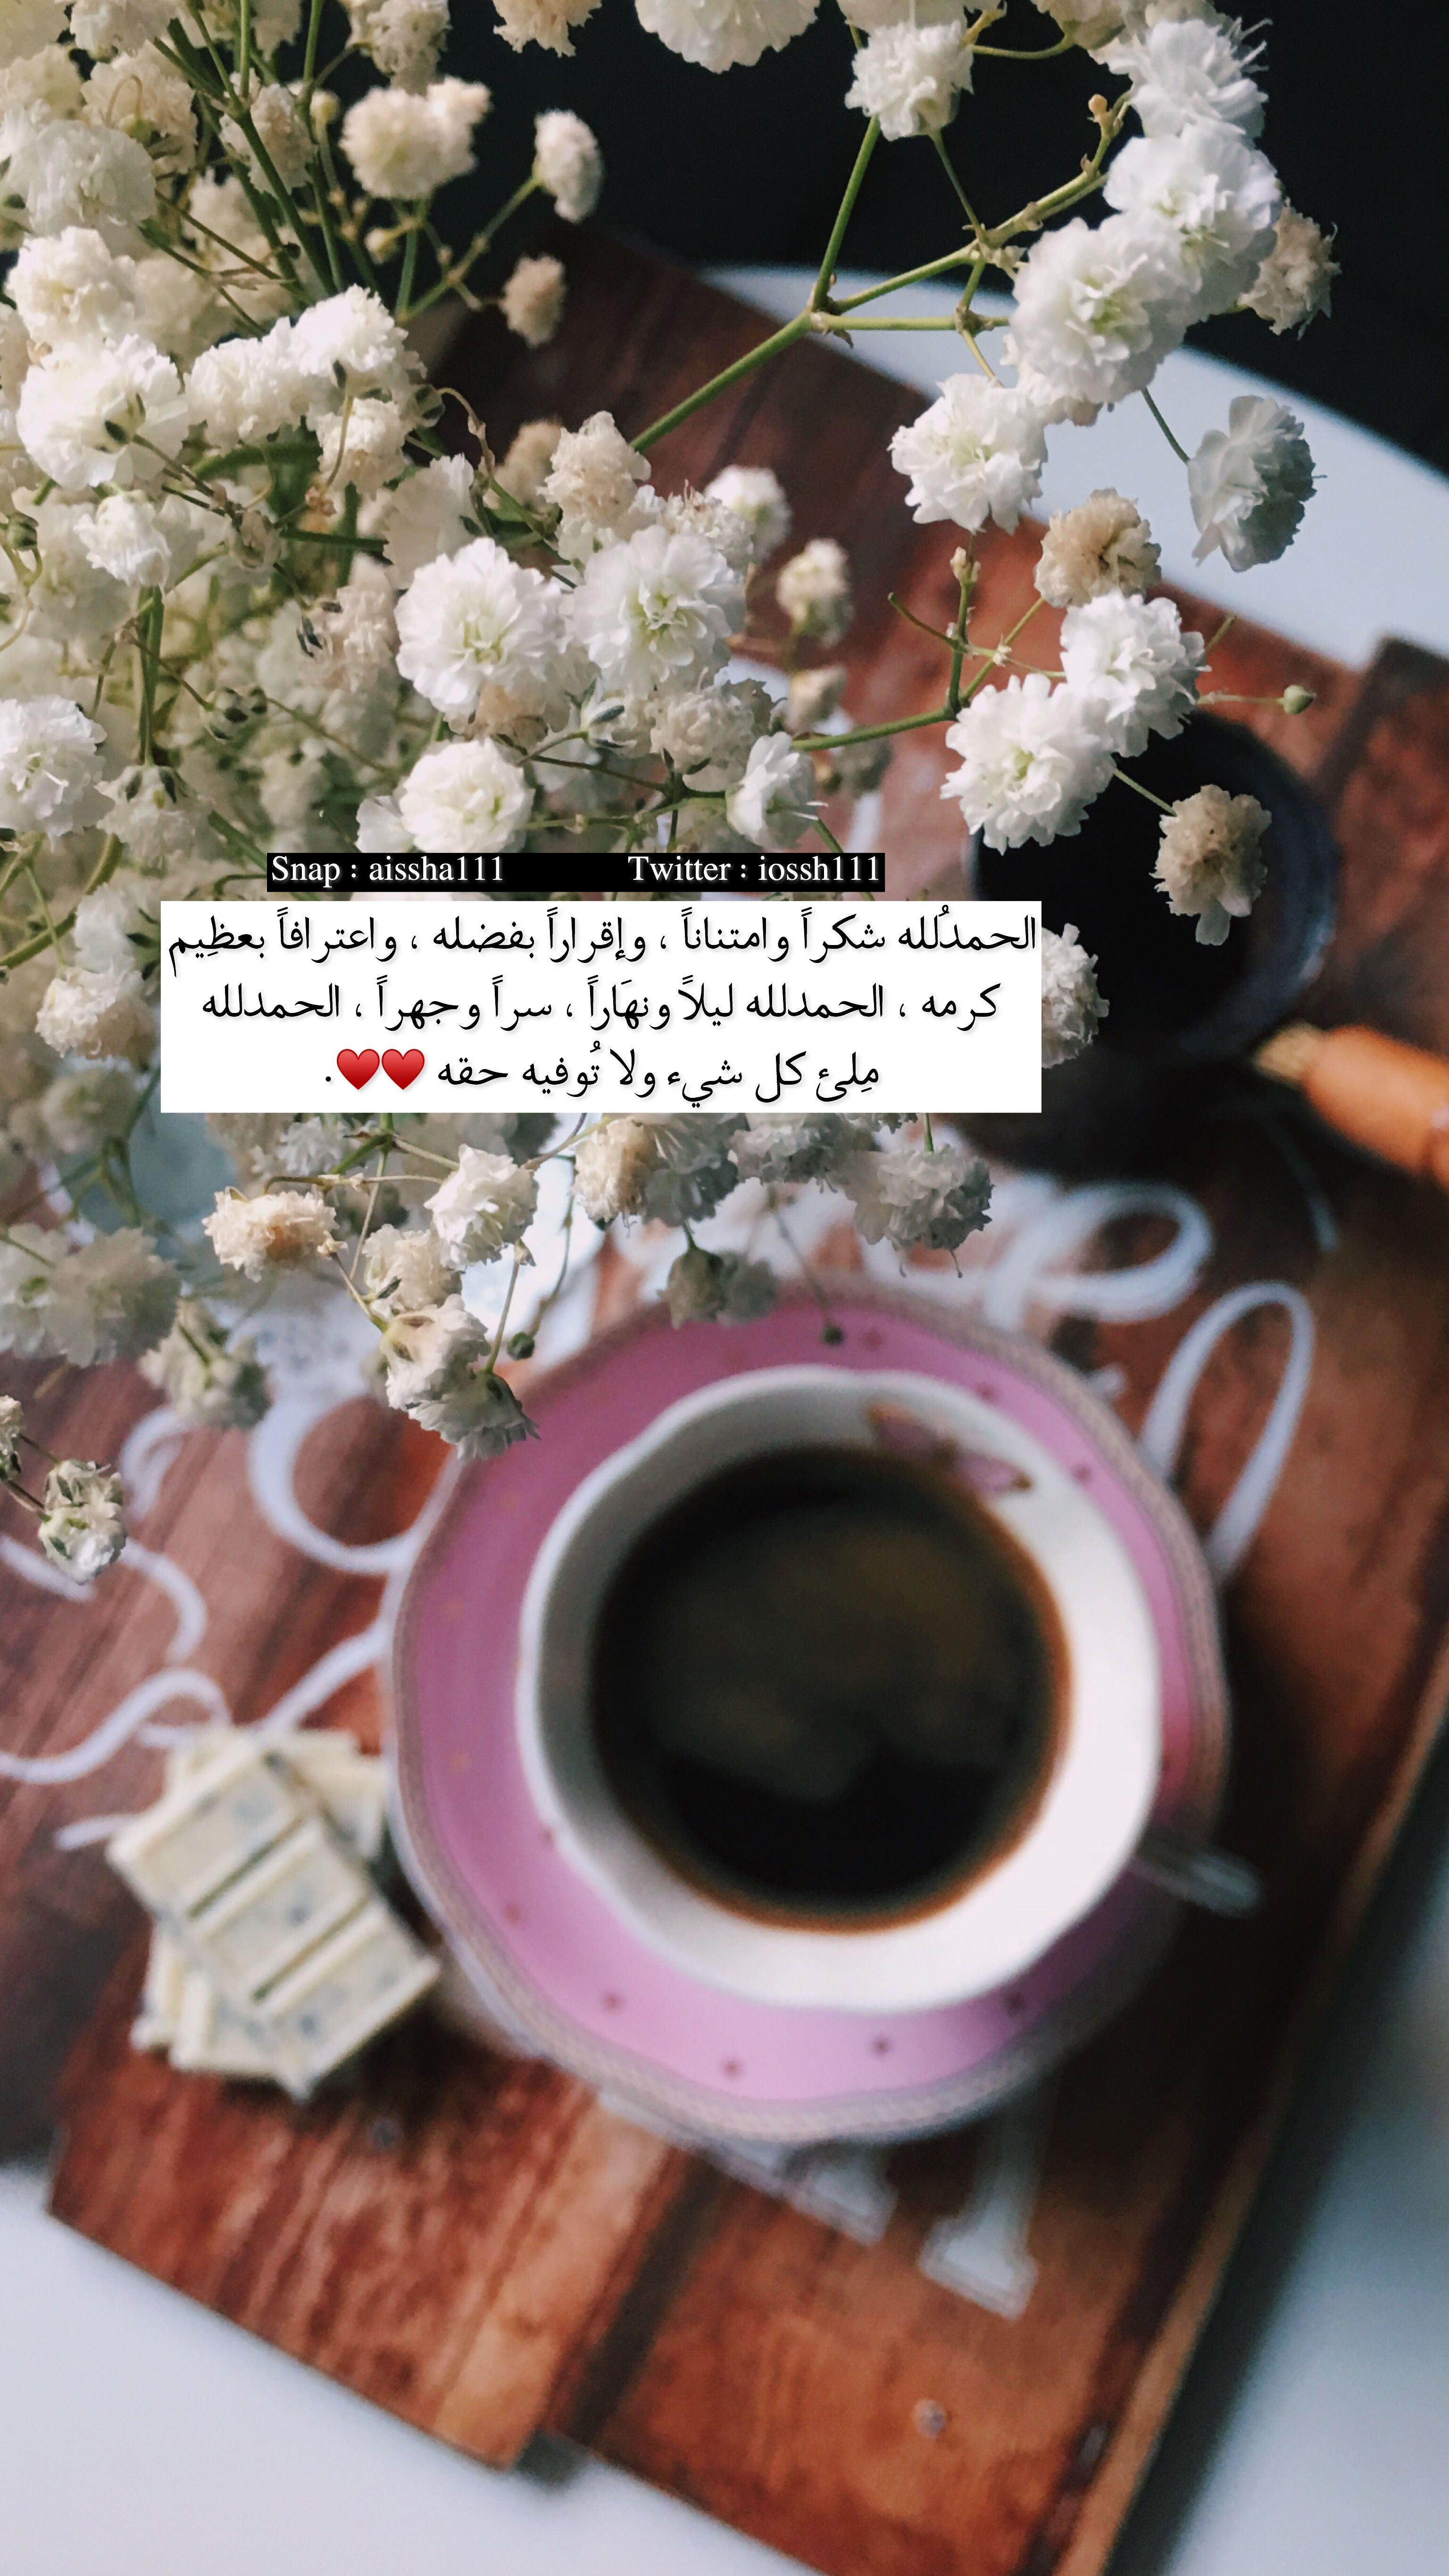 Pin By ساره الزهراني On قهوة قهوتي قهوة الصباح Coffee Beautiful Arabic Words Morning Greetings Quotes Islamic Pictures